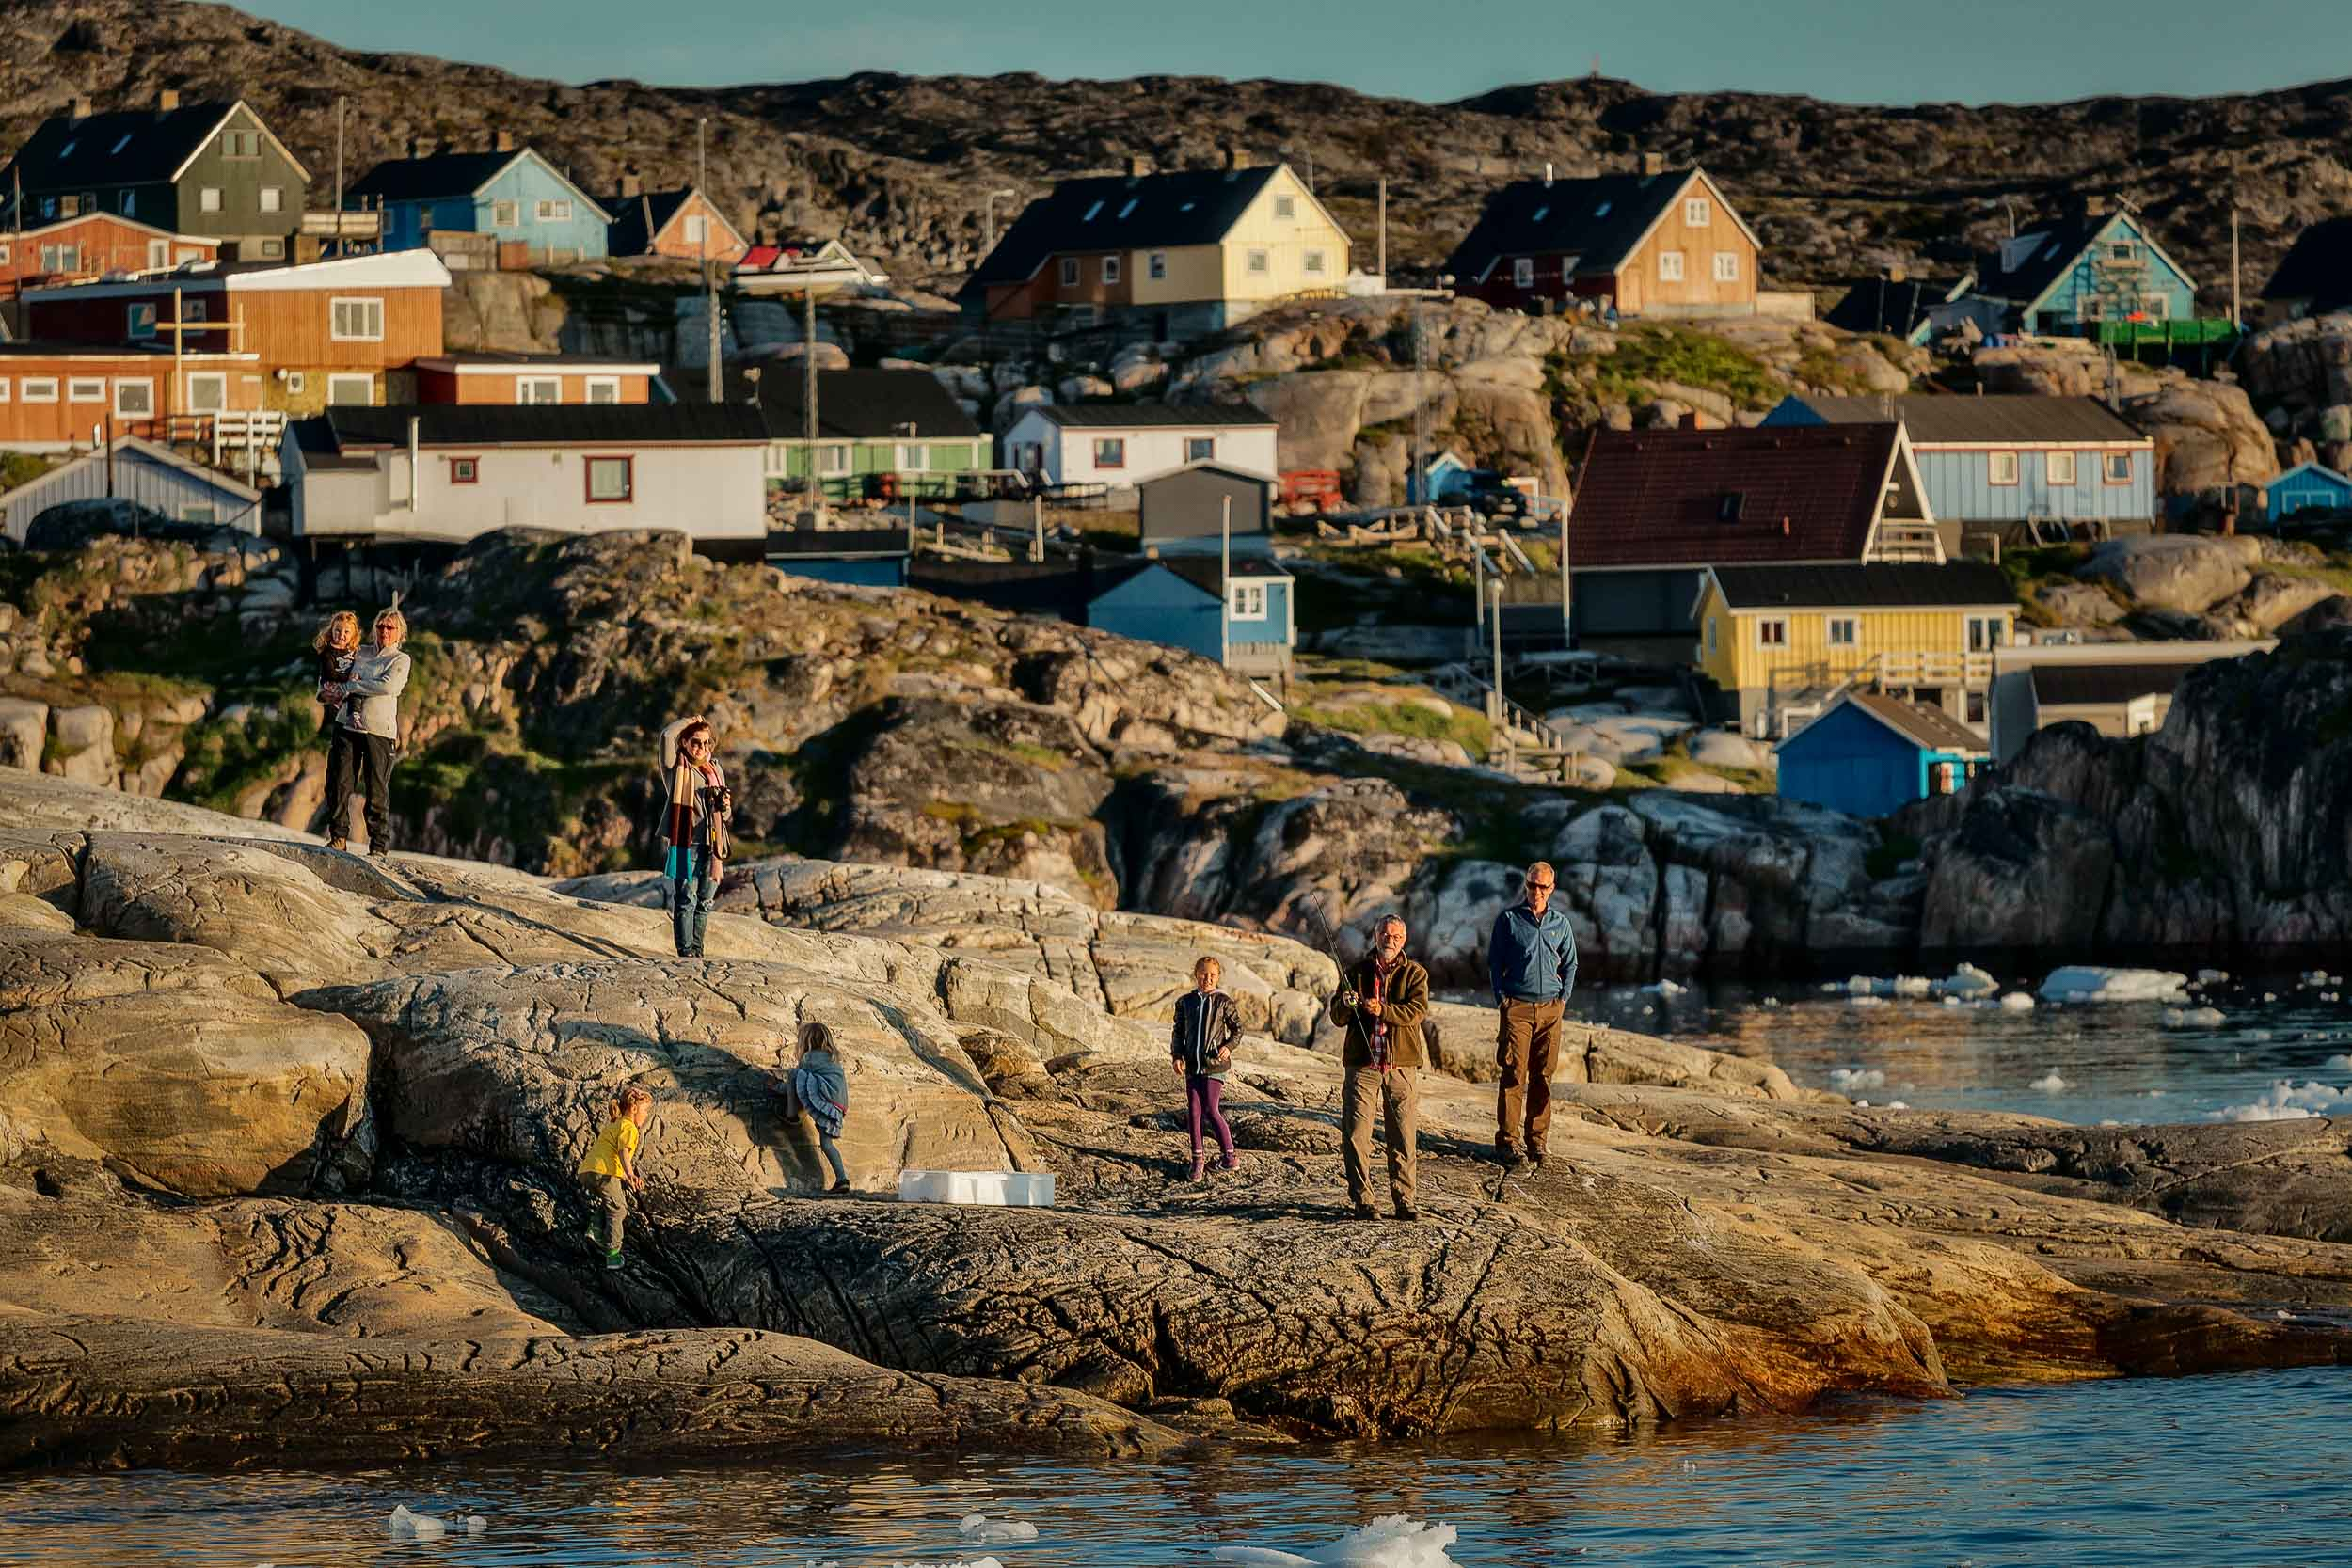 A    family    and a    fisherman    by the shores of    Ilulissat, Greenland    under the    midnight sun   .